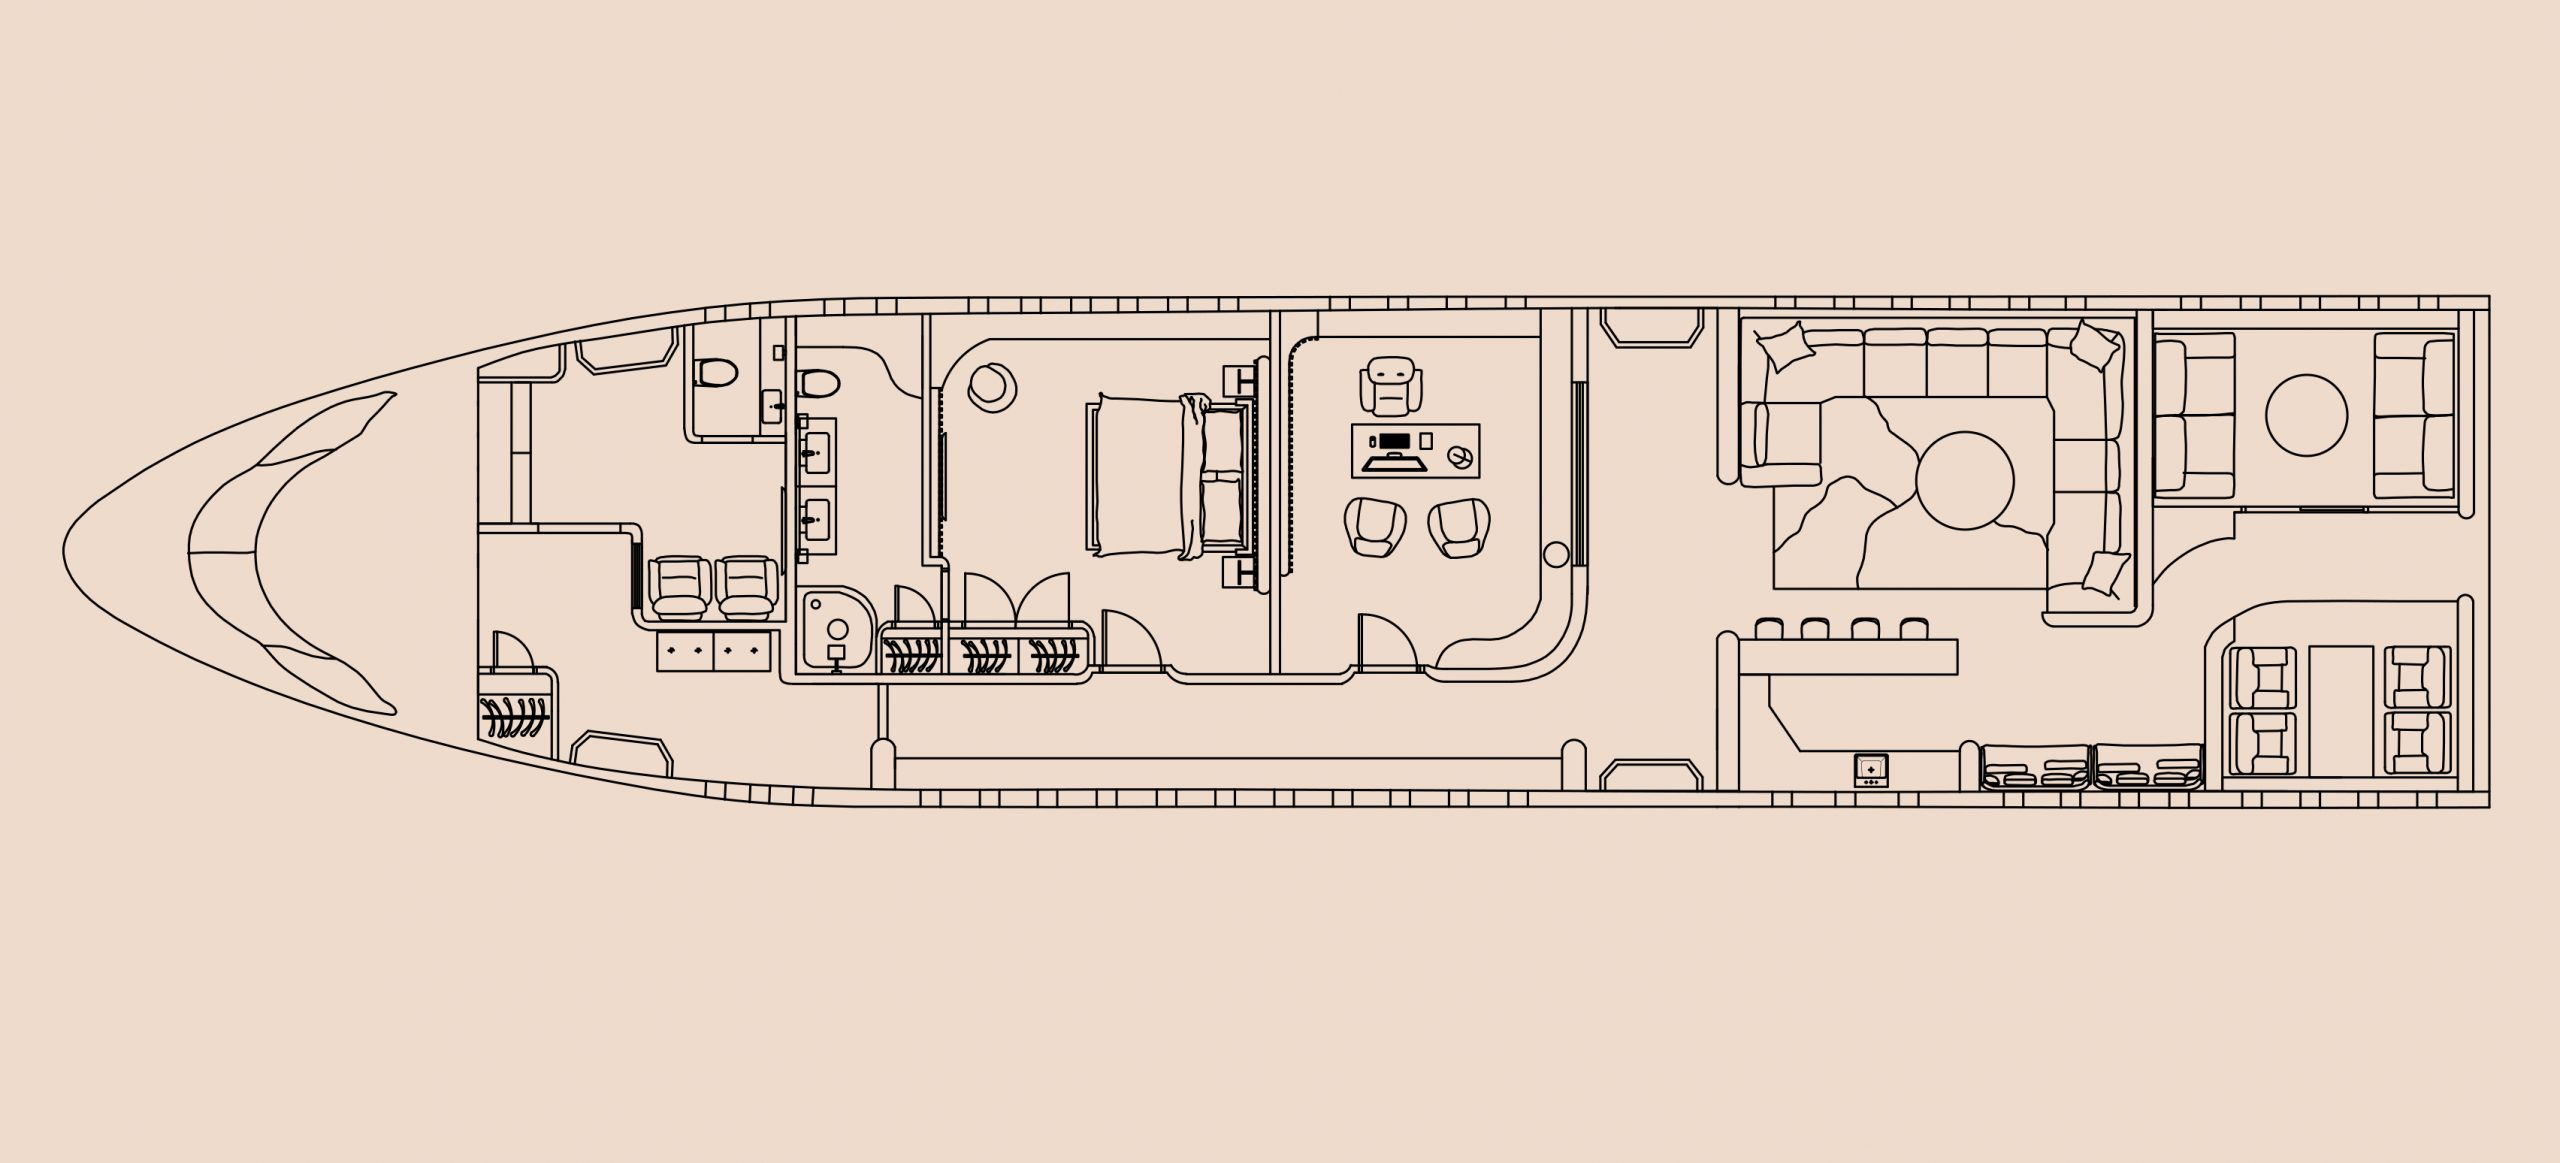 Airbus A350 XWB Family Aircraft - Proposed Floorplan